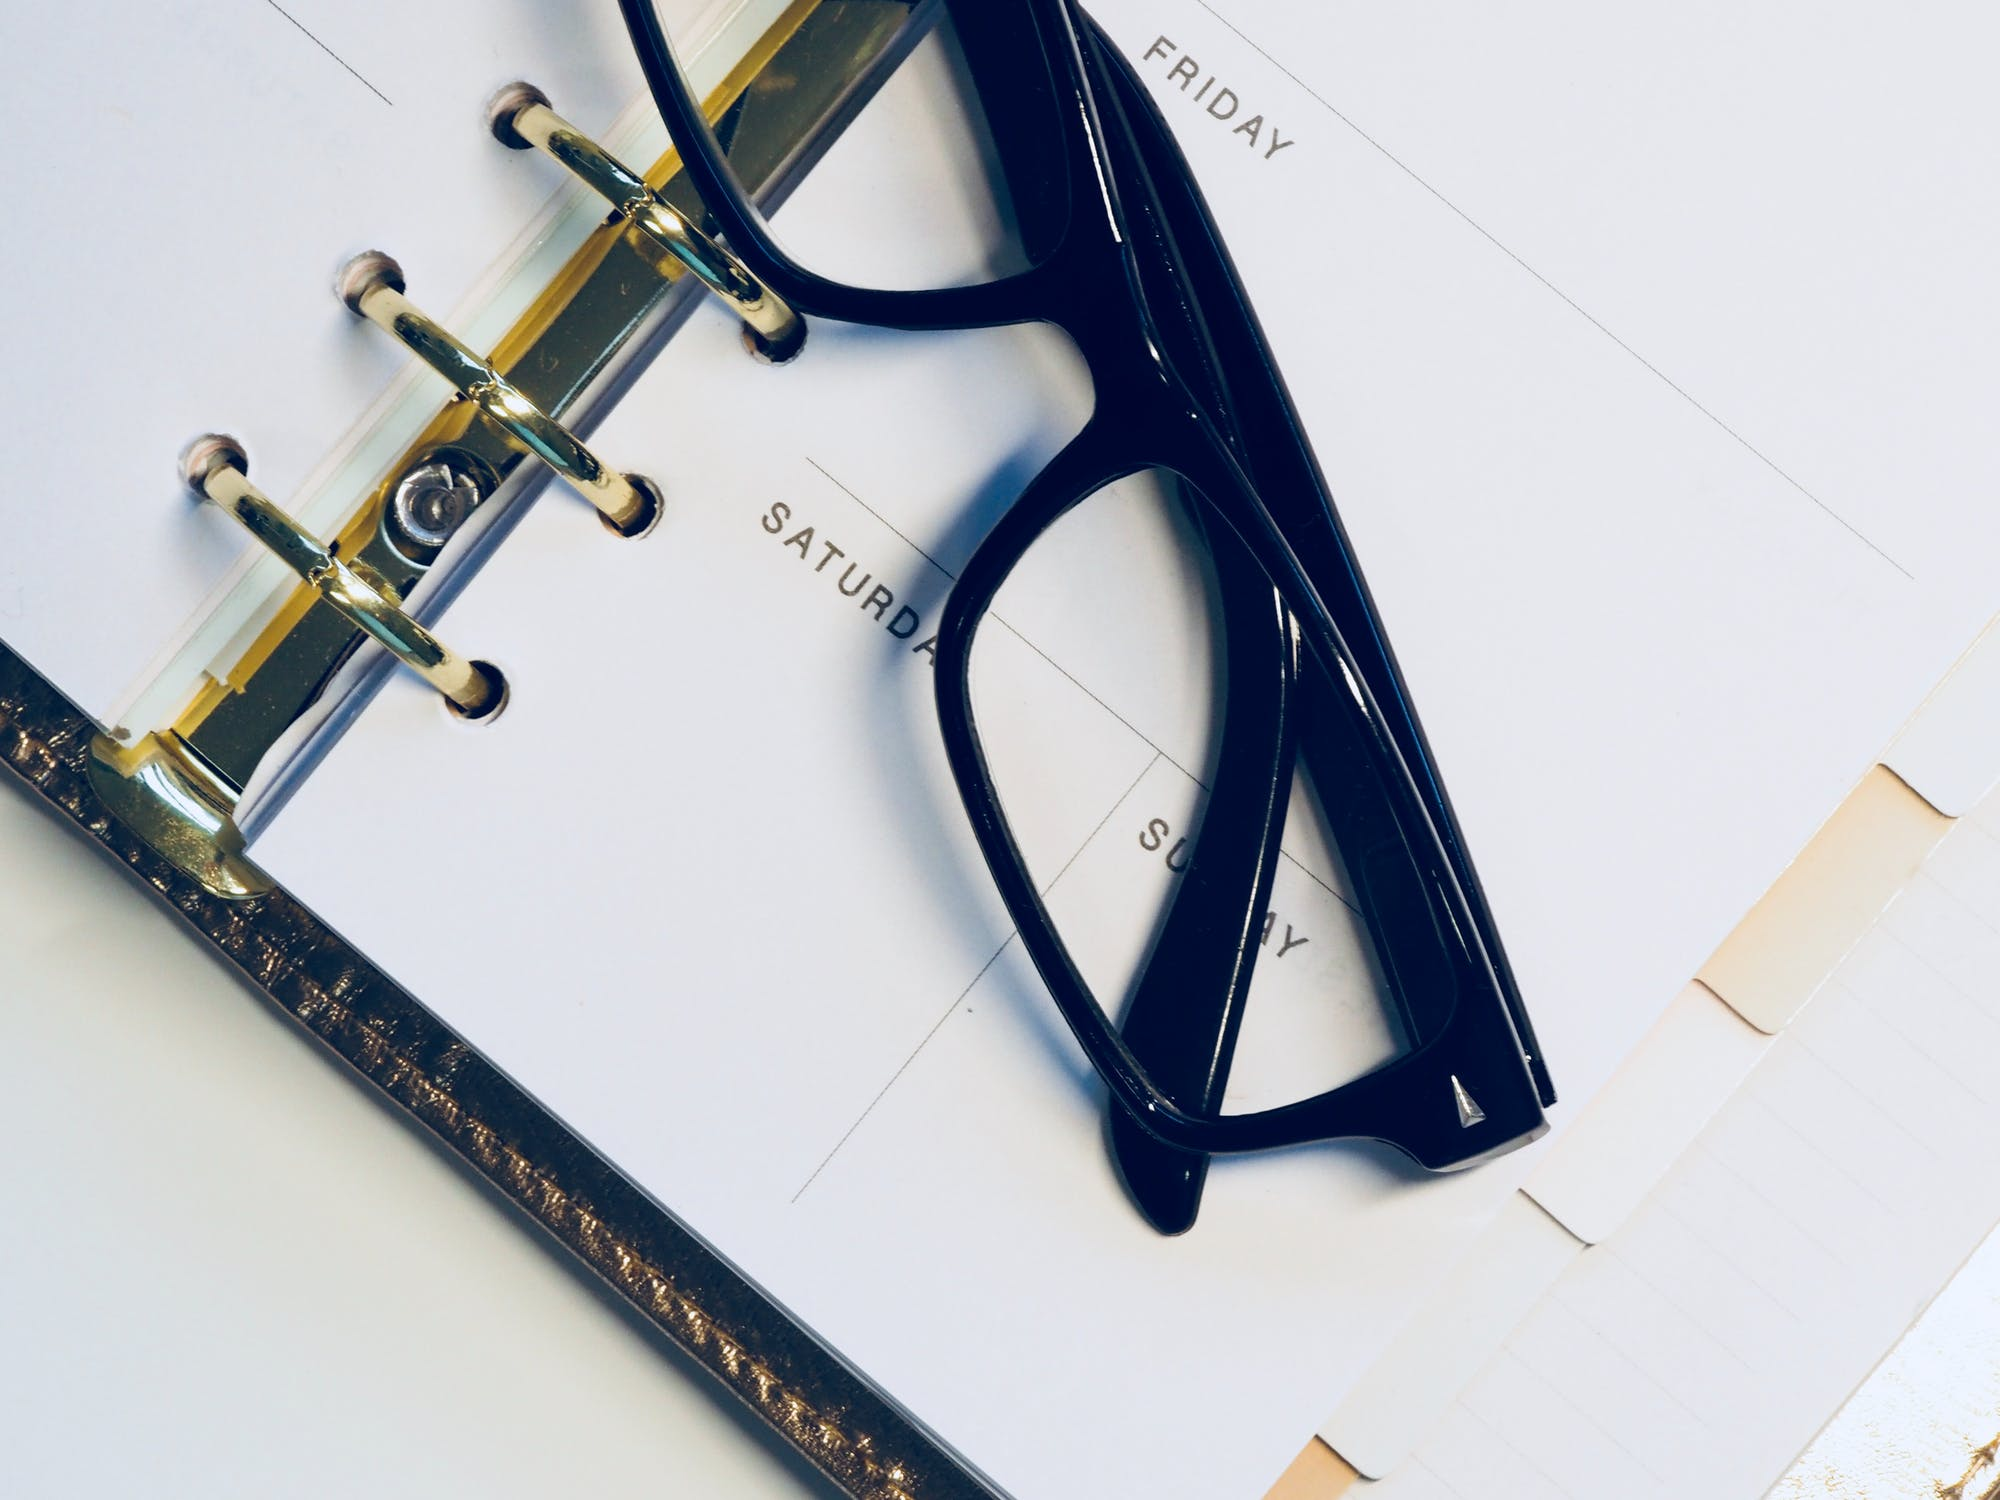 A daily planner sitting on a desk with a pair of black glasses on top